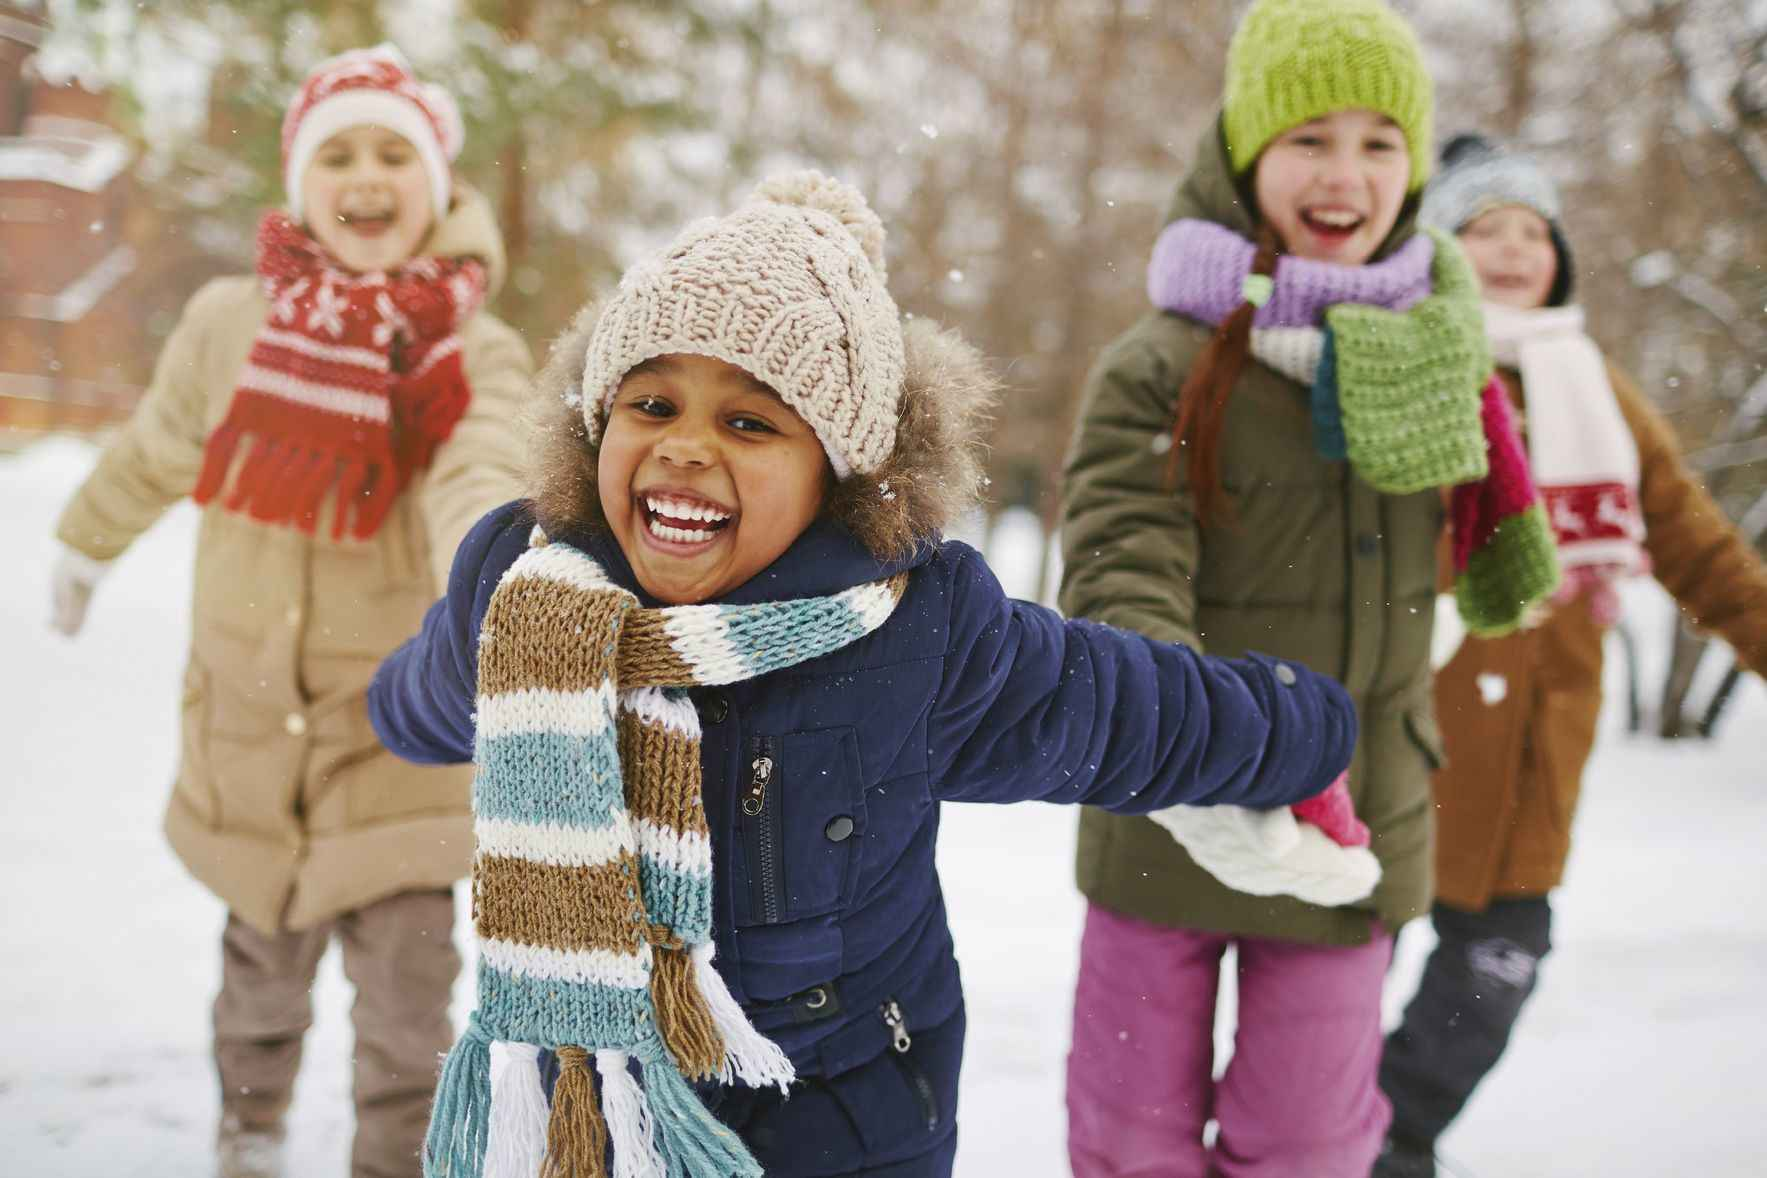 Help us bring joy to families in need this winter season! image